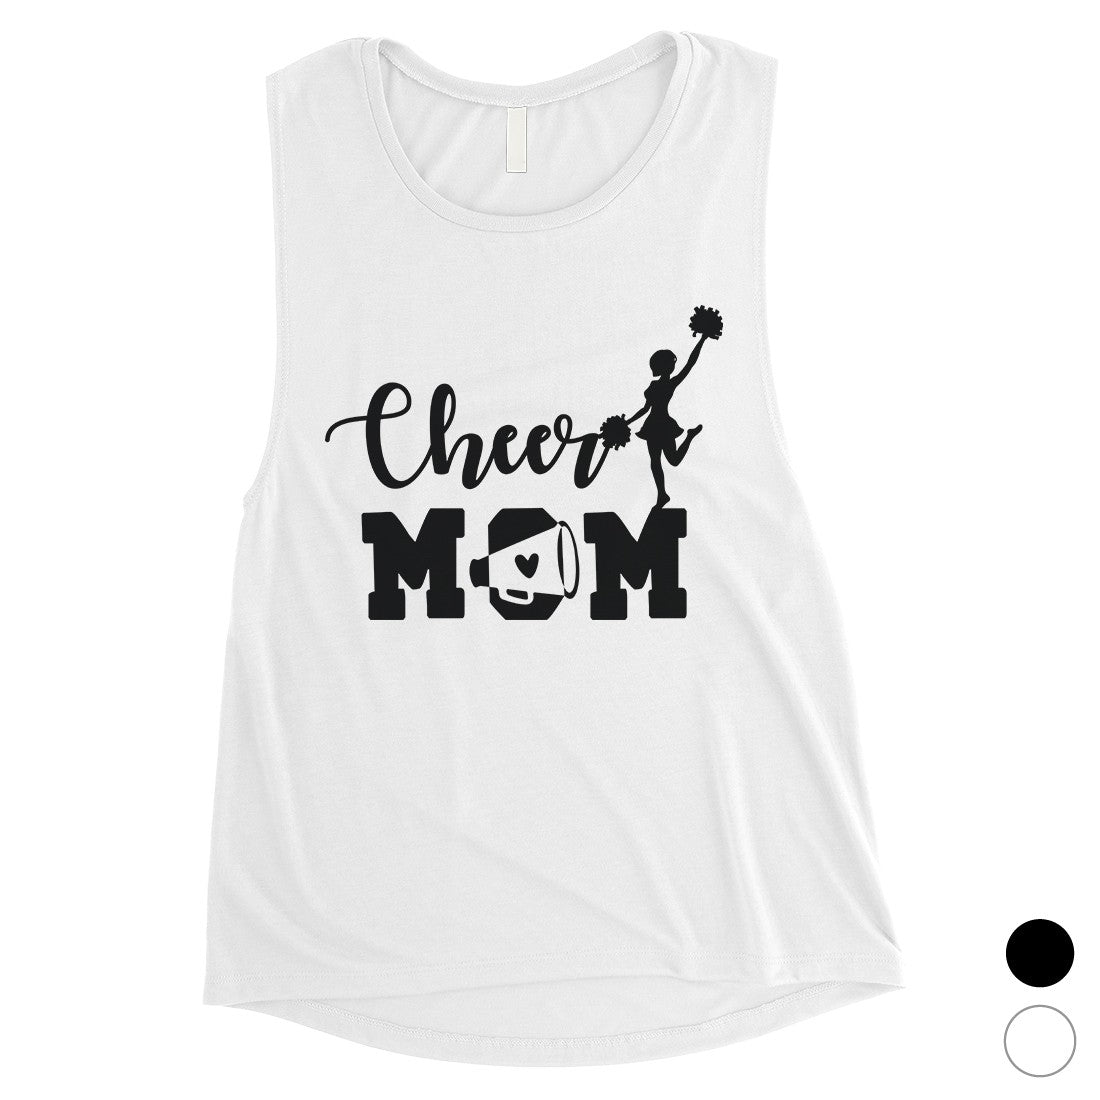 0628d9fff4a9 Cheer Mom Womens Muscle Tank Top Mother's Day Gift From Daughter ...